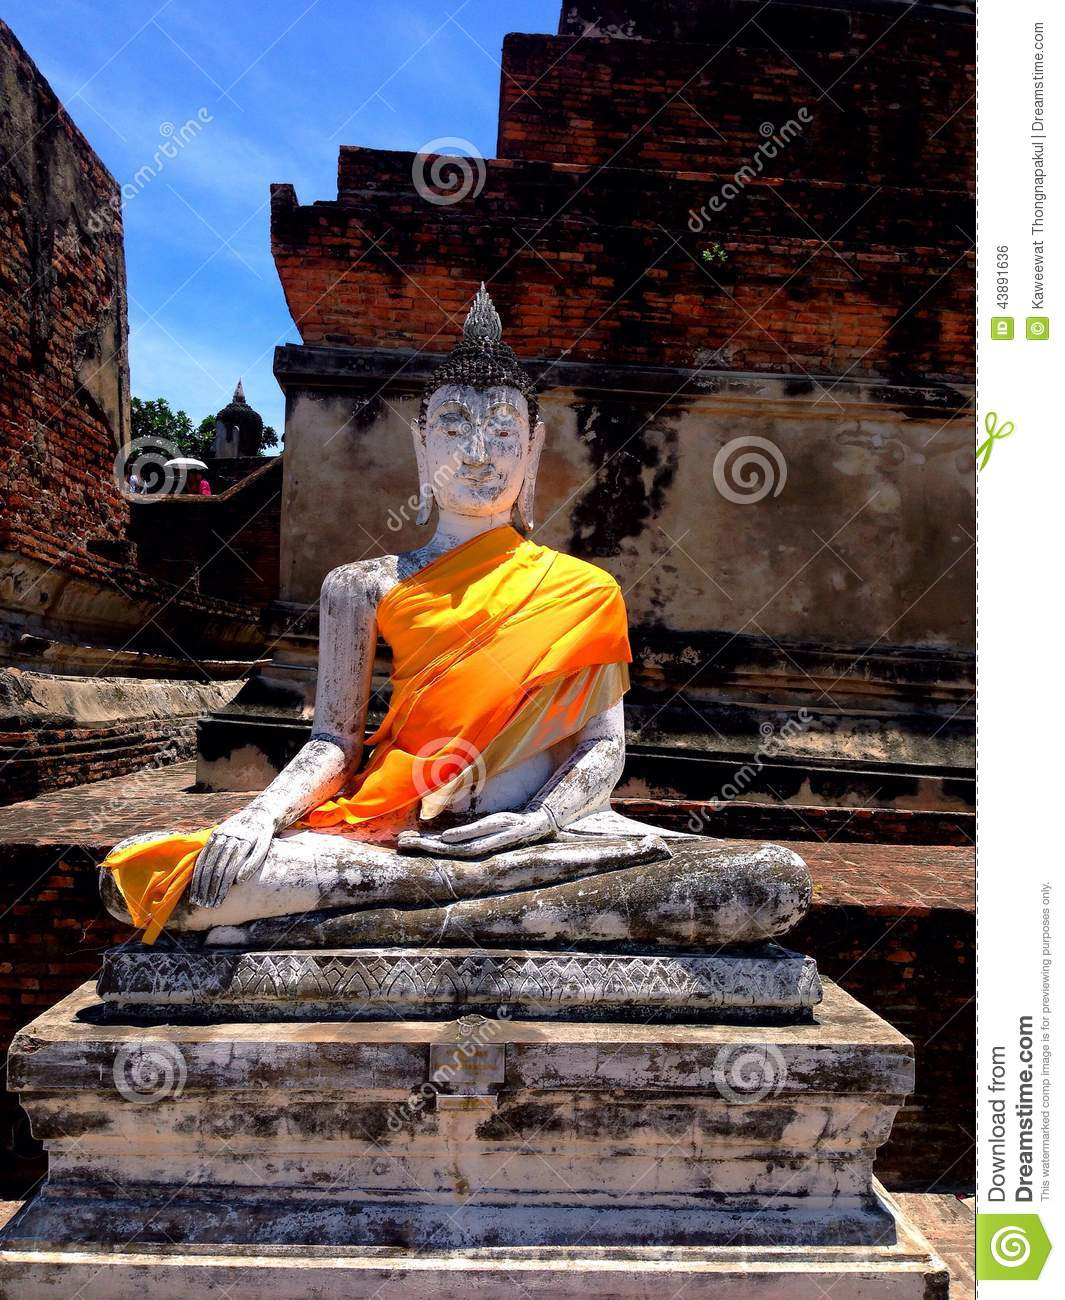 a description of buddhism as a religion Guide to buddhism, a tradition of personal spiritual development, including meditation, philosophy, ethics, different eastern and western strands of buddhism and famous buddhist figures.